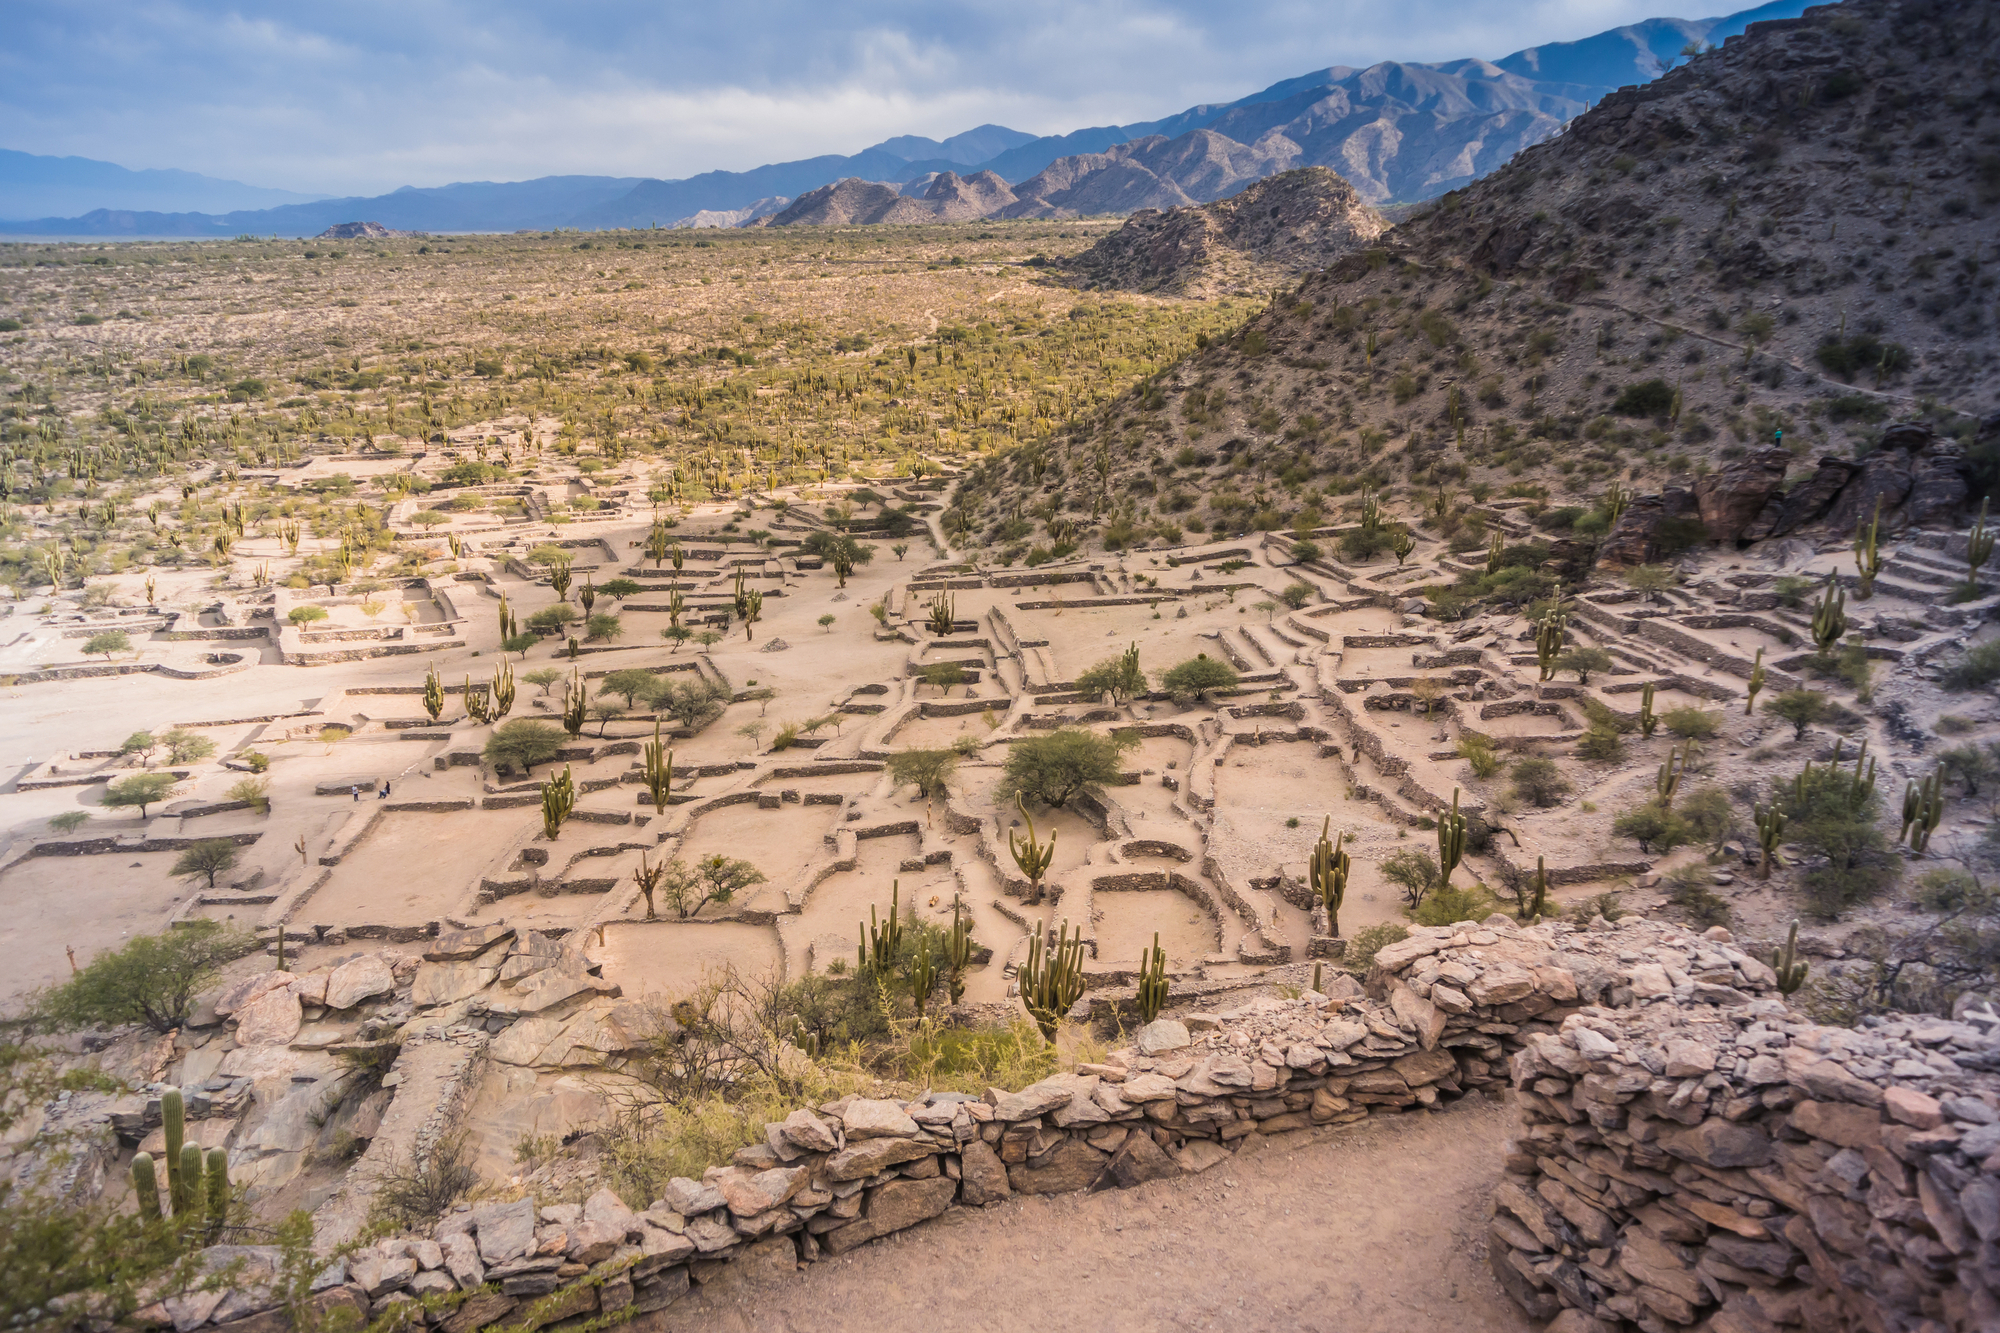 One of the most advanced civilizations in Latin America, the Quilmes people inhabited what is today known as the Santa Maria Valley in the northwester